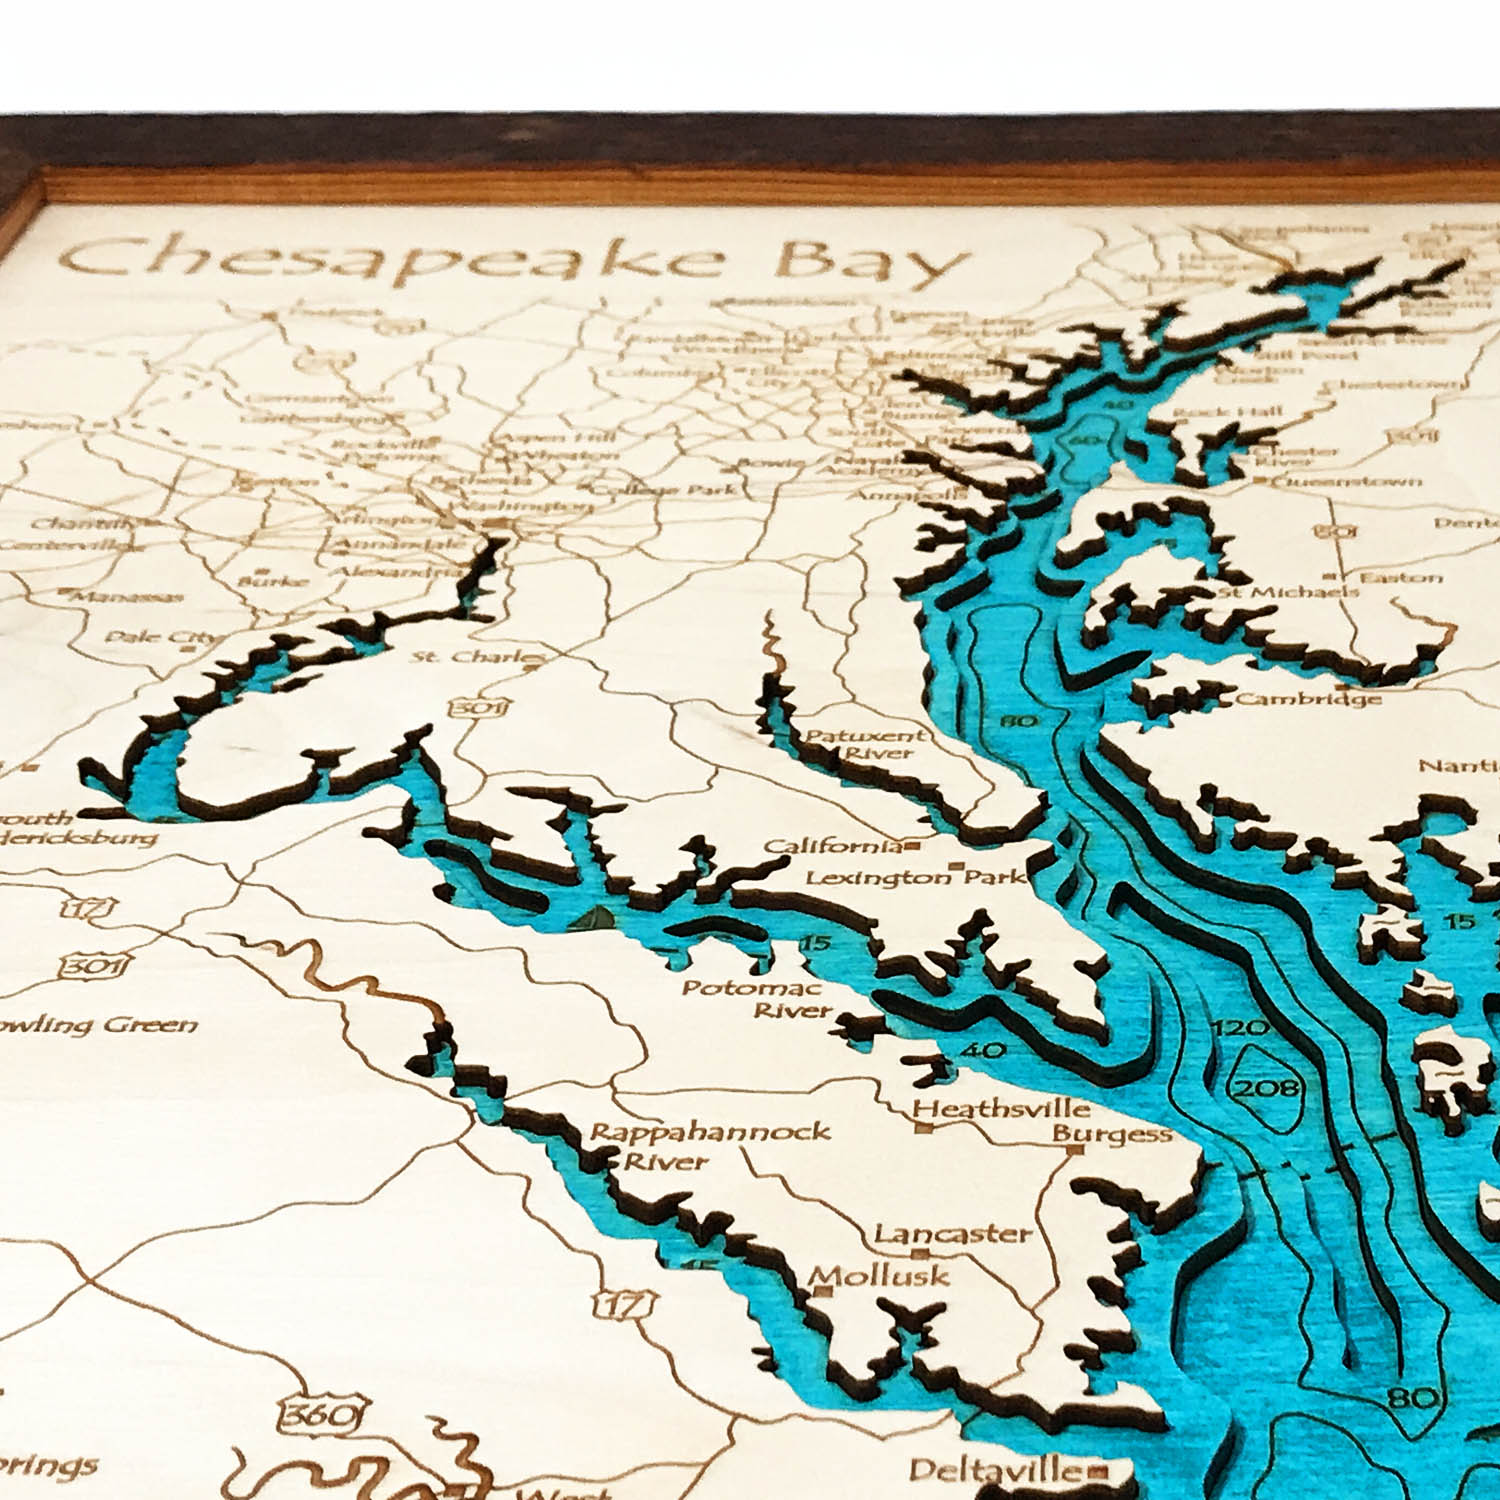 Chesapeake Bay Topographic Map.Chesapeake Bay Home Decor Gifts Nautical Decor Wall Art